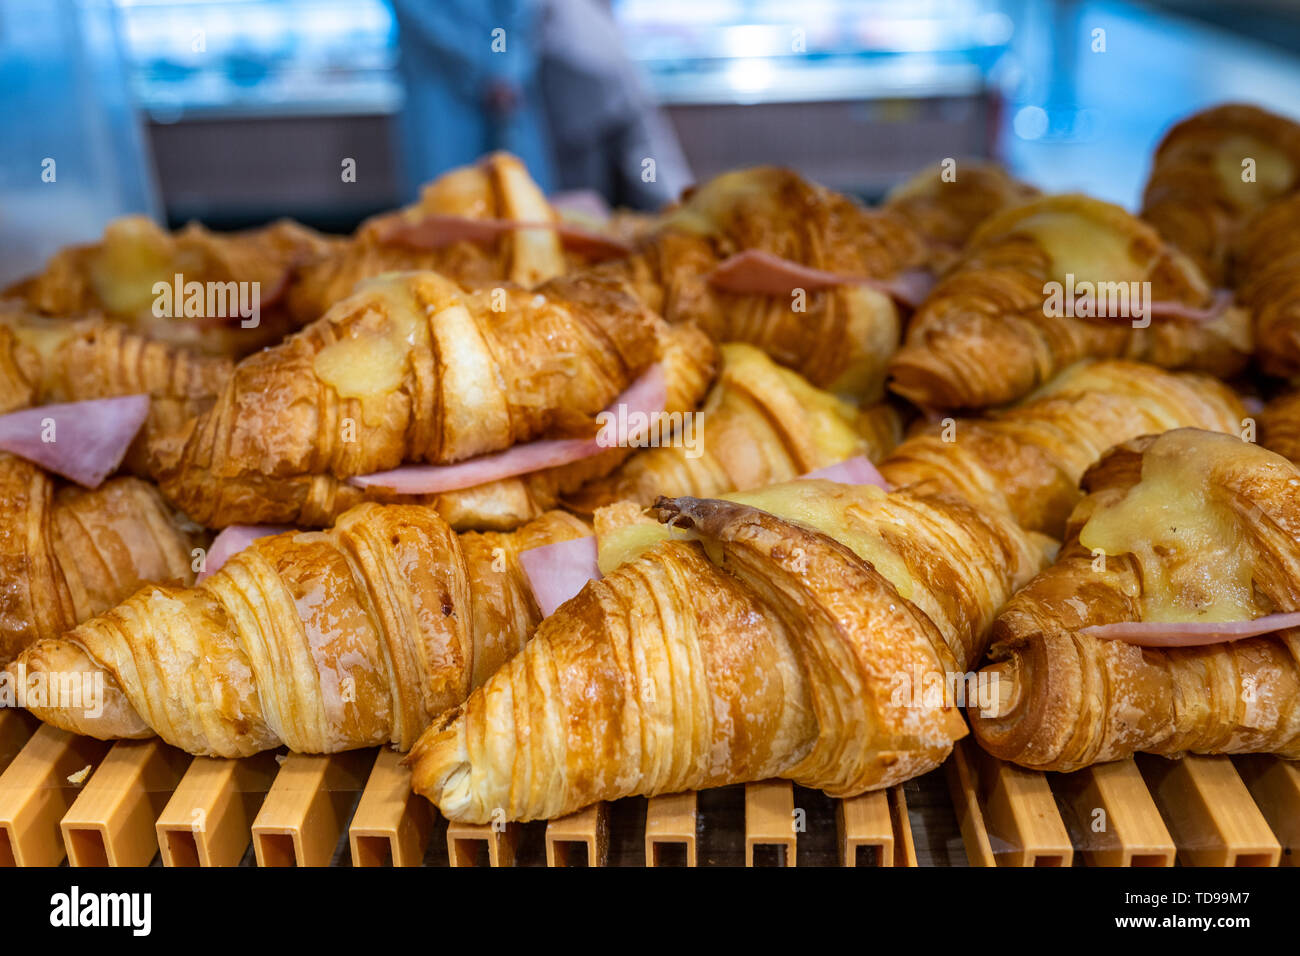 Croissant with melted cheese and ham selling at pastry shop - Stock Image